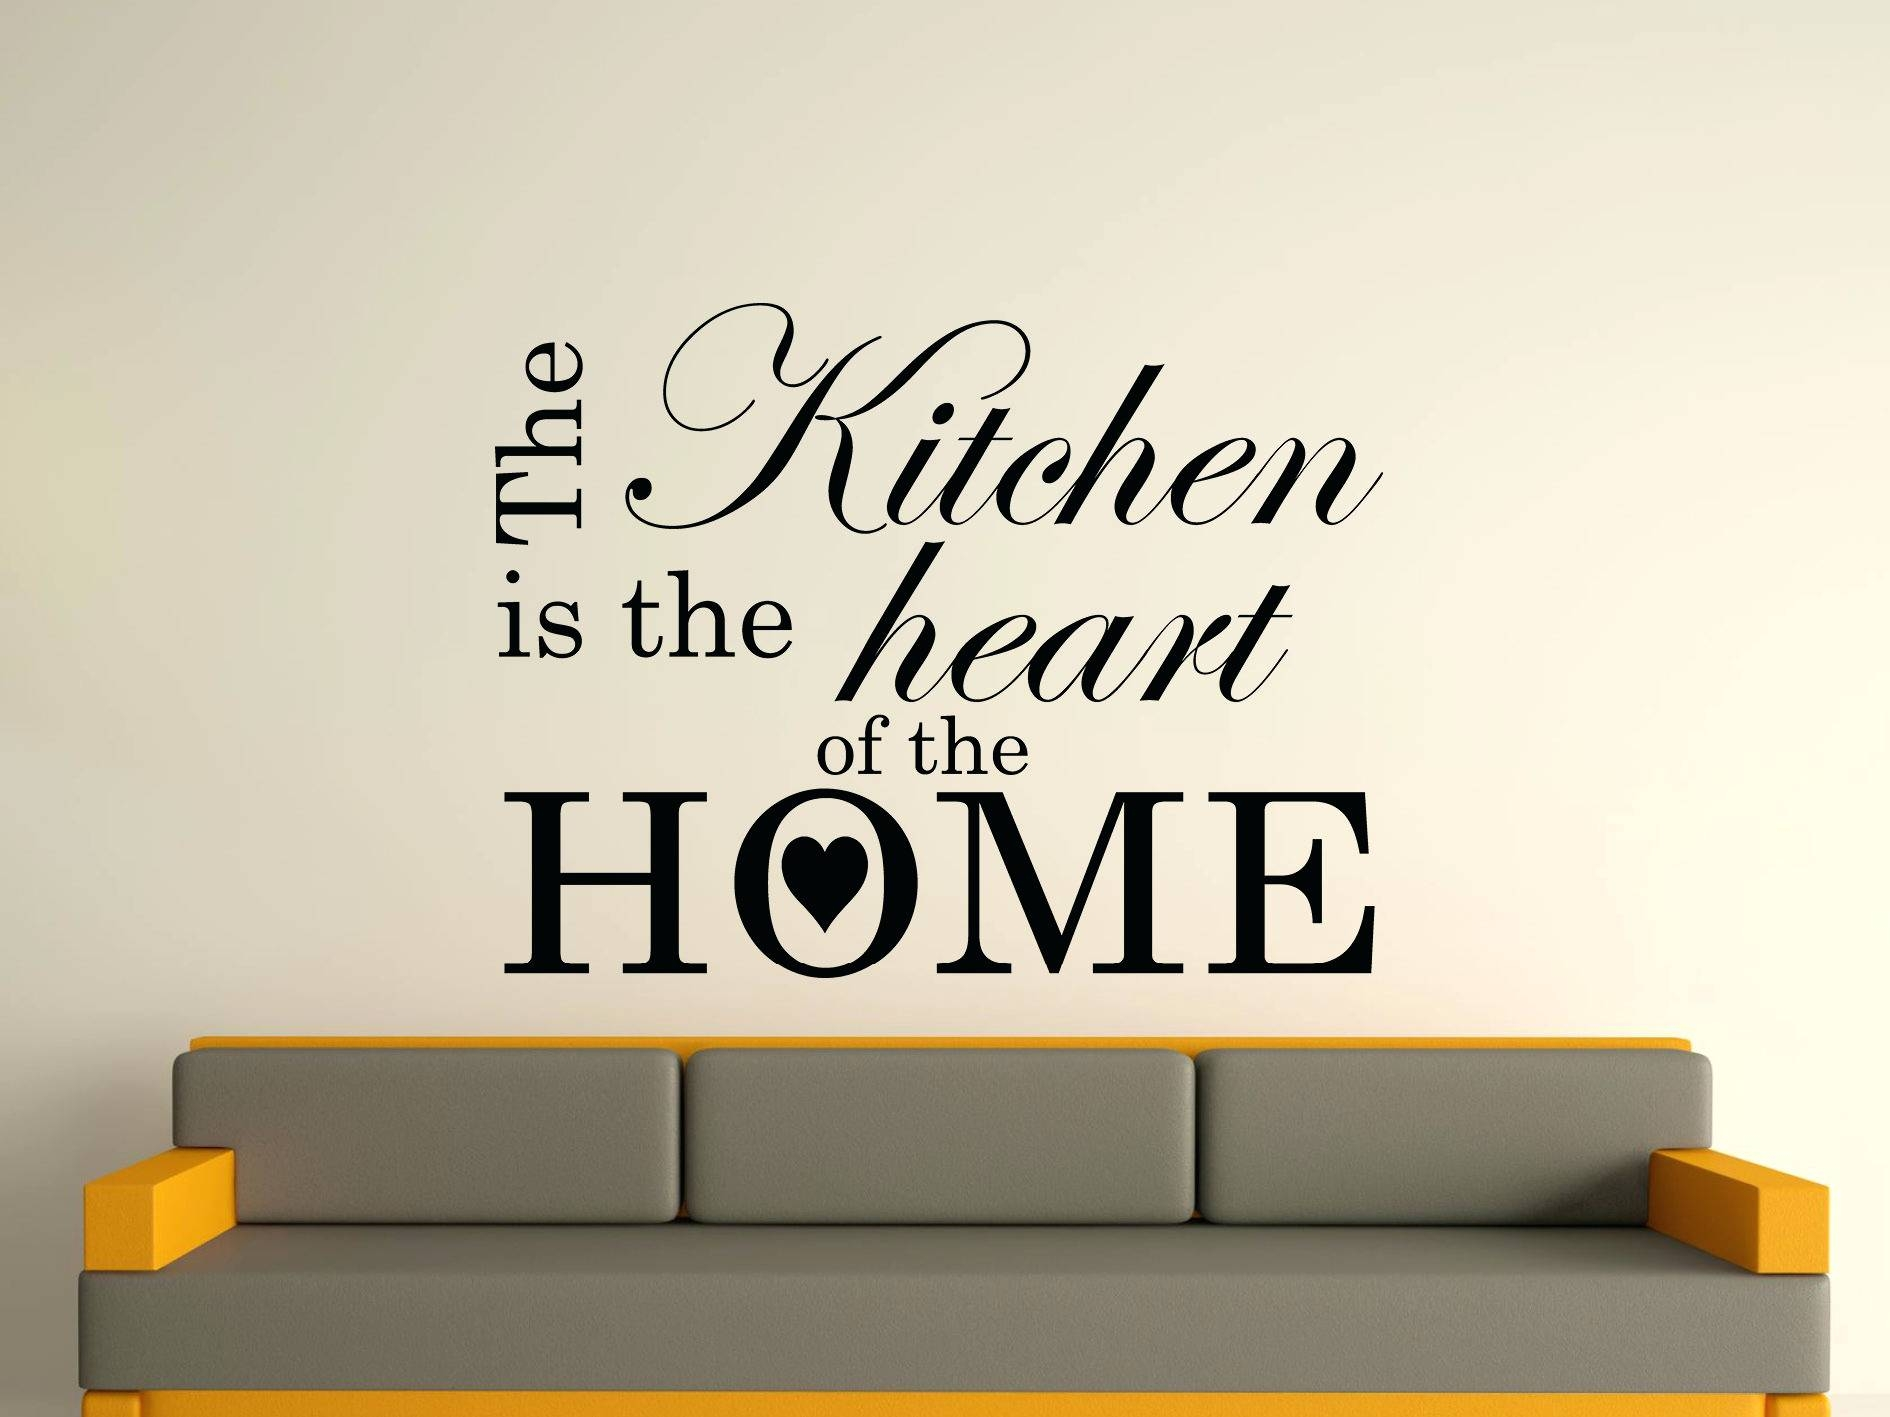 Wall Arts ~ Home Wall Art Designs Home Sweet Home Wall Art Within 2018 Home Sweet Home Metal Wall Art (View 13 of 20)